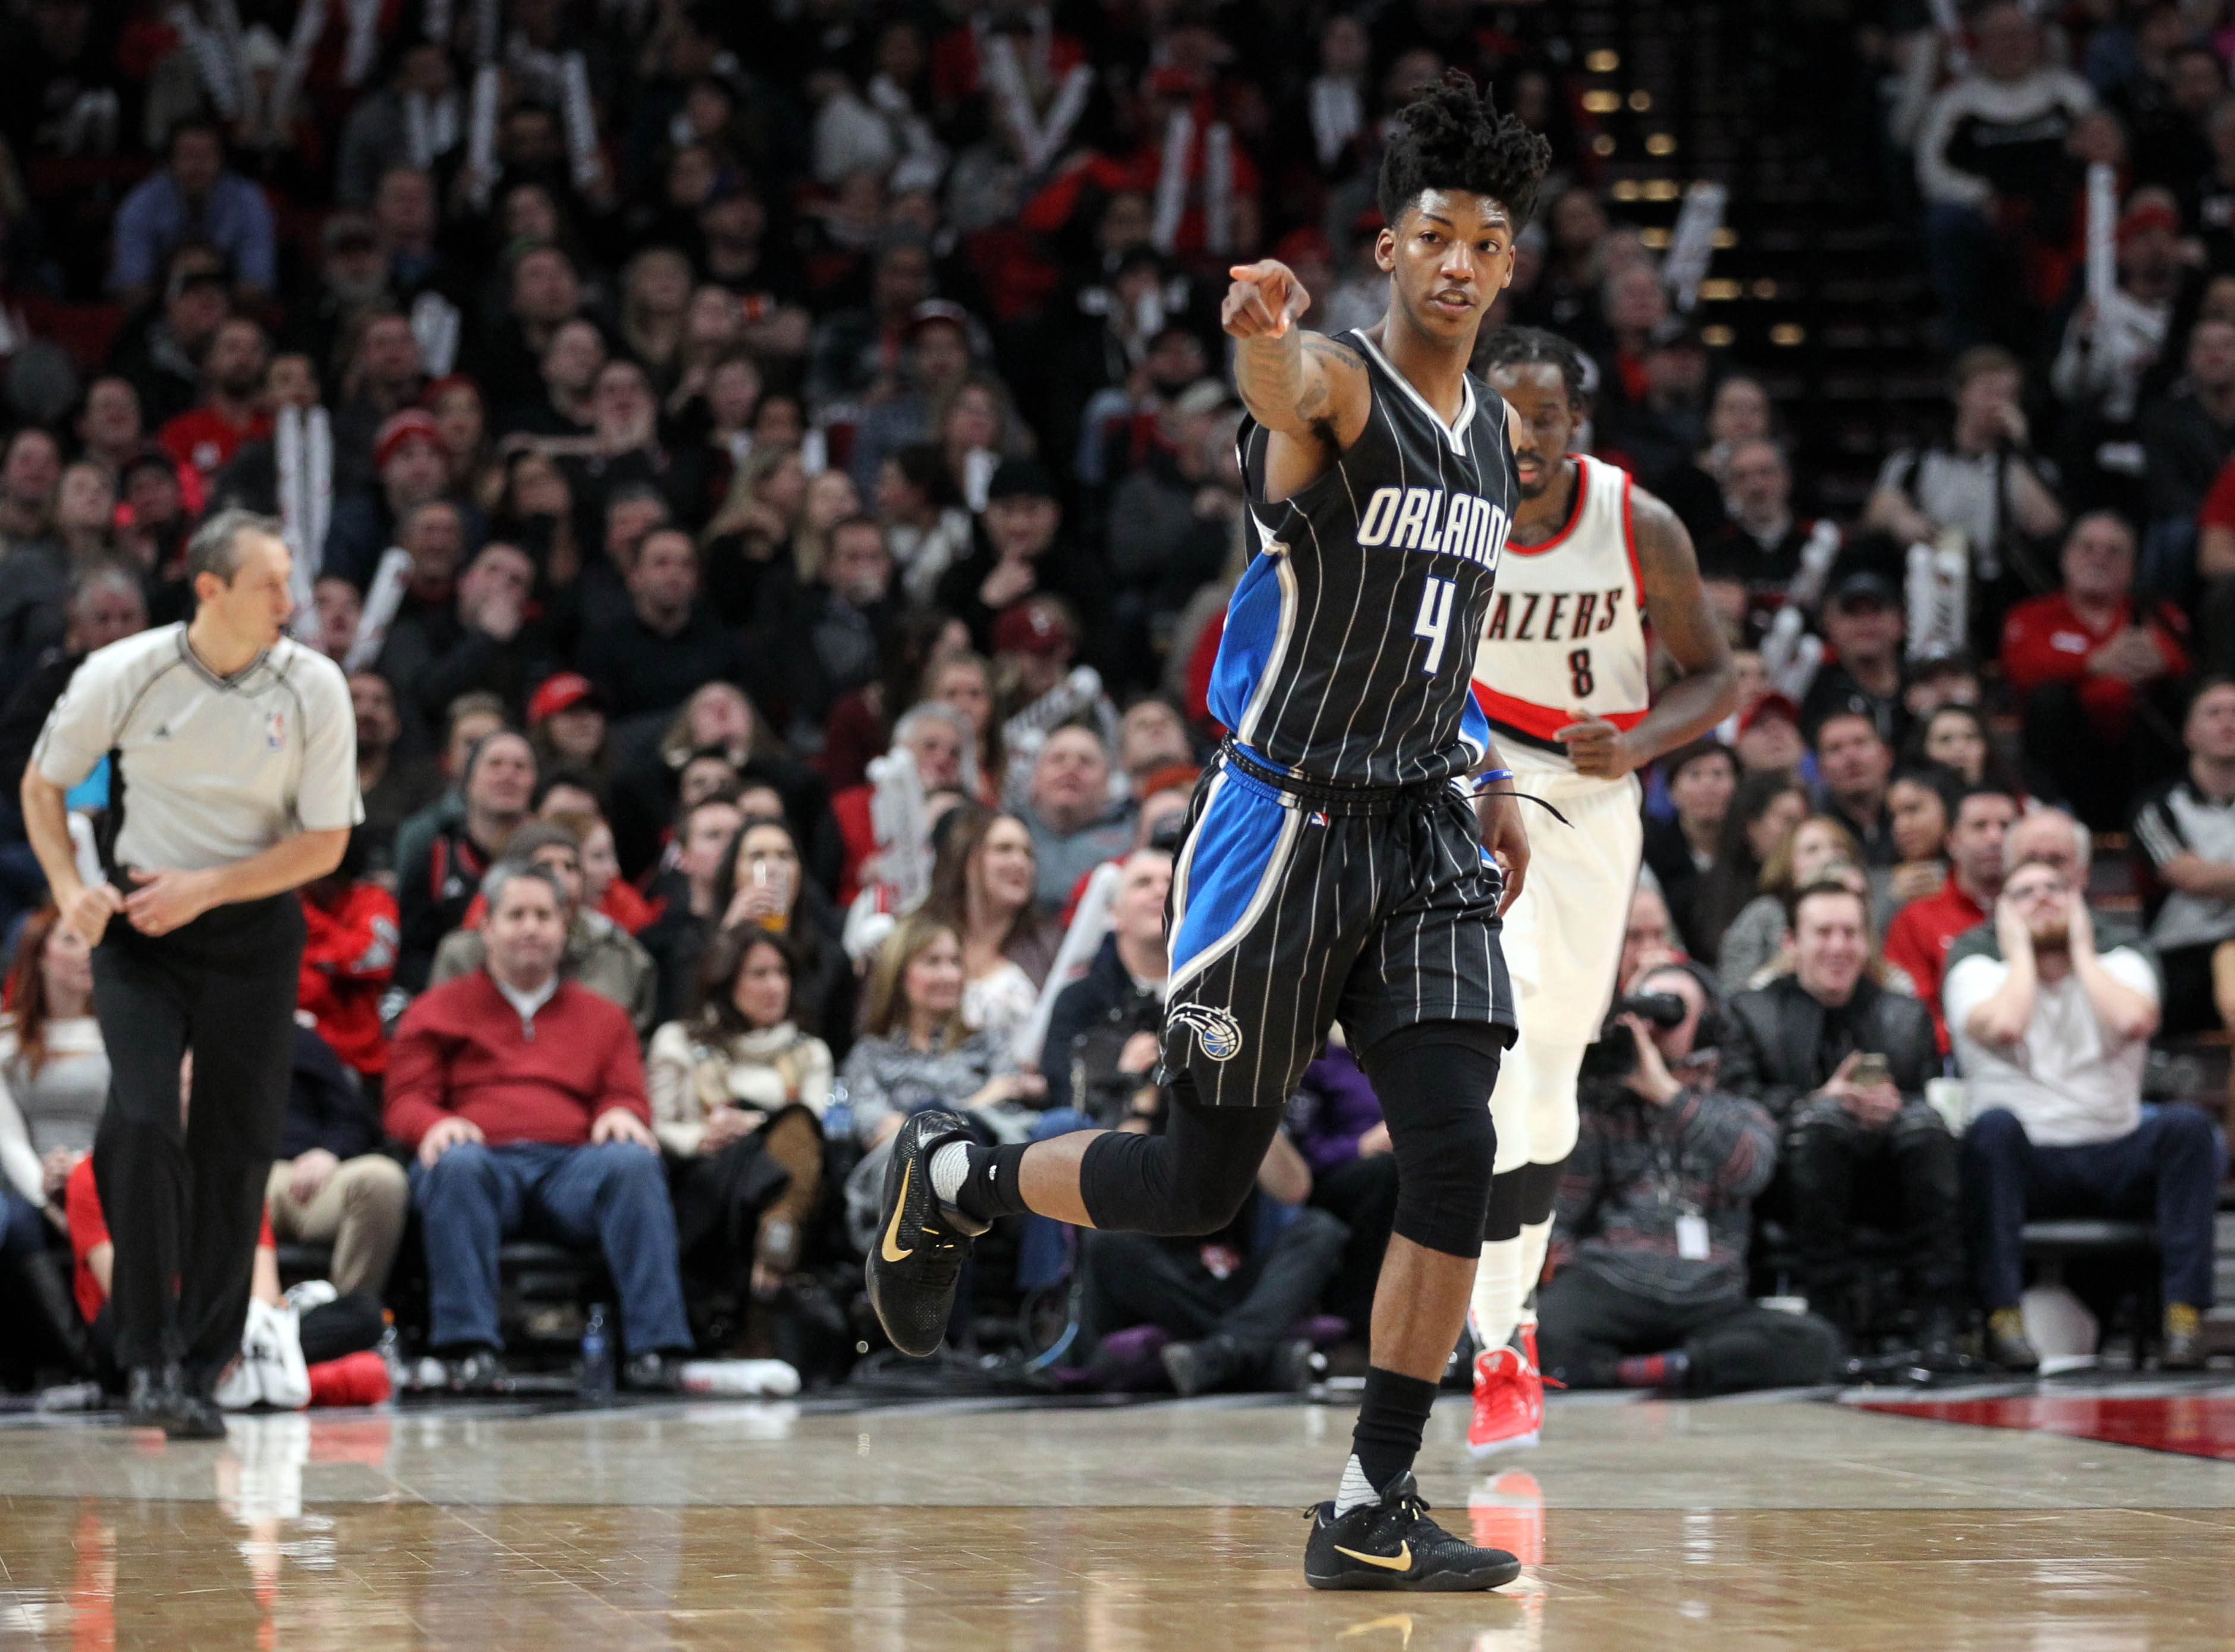 NBA: Orlando Magic at Portland Trail Blazers